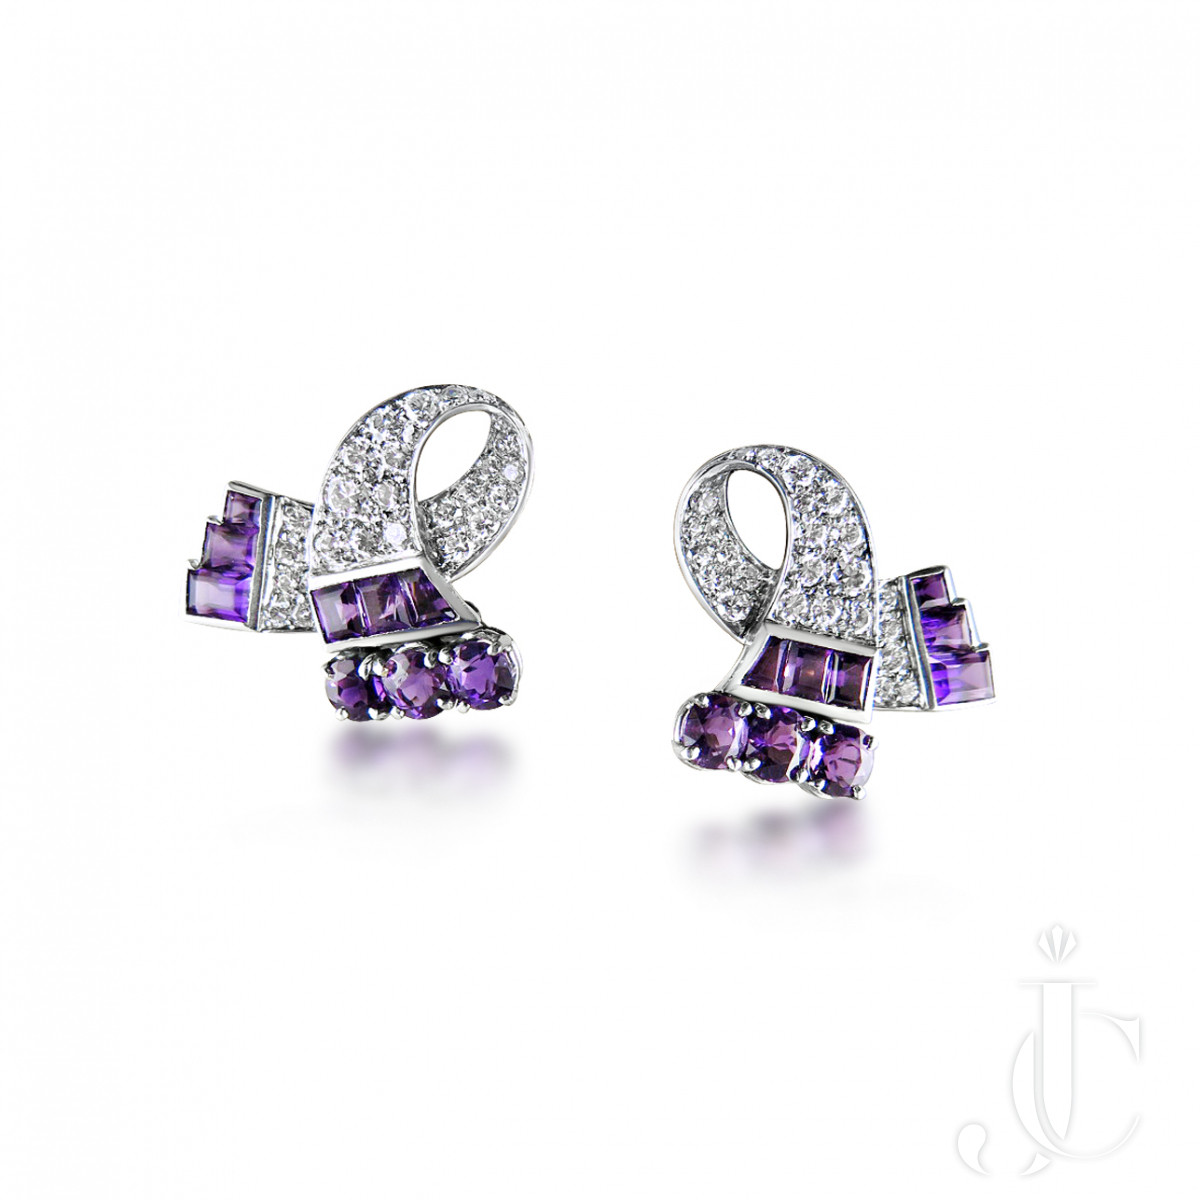 Pair of amethyst and diamond earclips